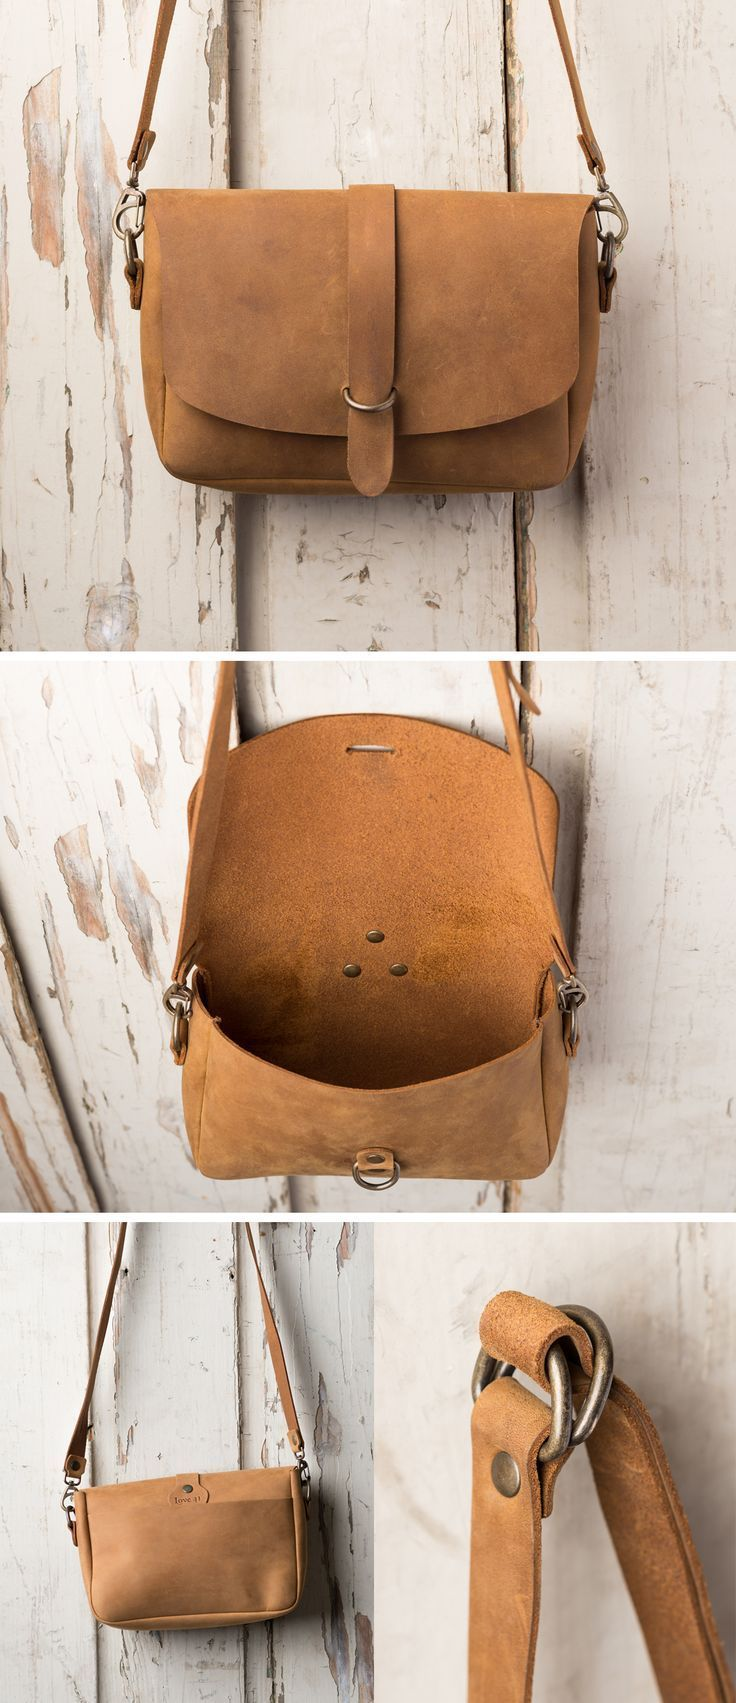 The Love 41 Crossbody Koroha in Tobacco   Full Grain Leather   41 Year Warranty    $86.00 - leather purses cheap, best place to buy purses, big handbags *sponsored https://www.pinterest.com/purses_handbags/ https://www.pinterest.com/explore/handbags/ https://www.pinterest.com/purses_handbags/handbags/ https://www.guessfactory.com/en/Catalog/Browse/women/handbags/view-all/